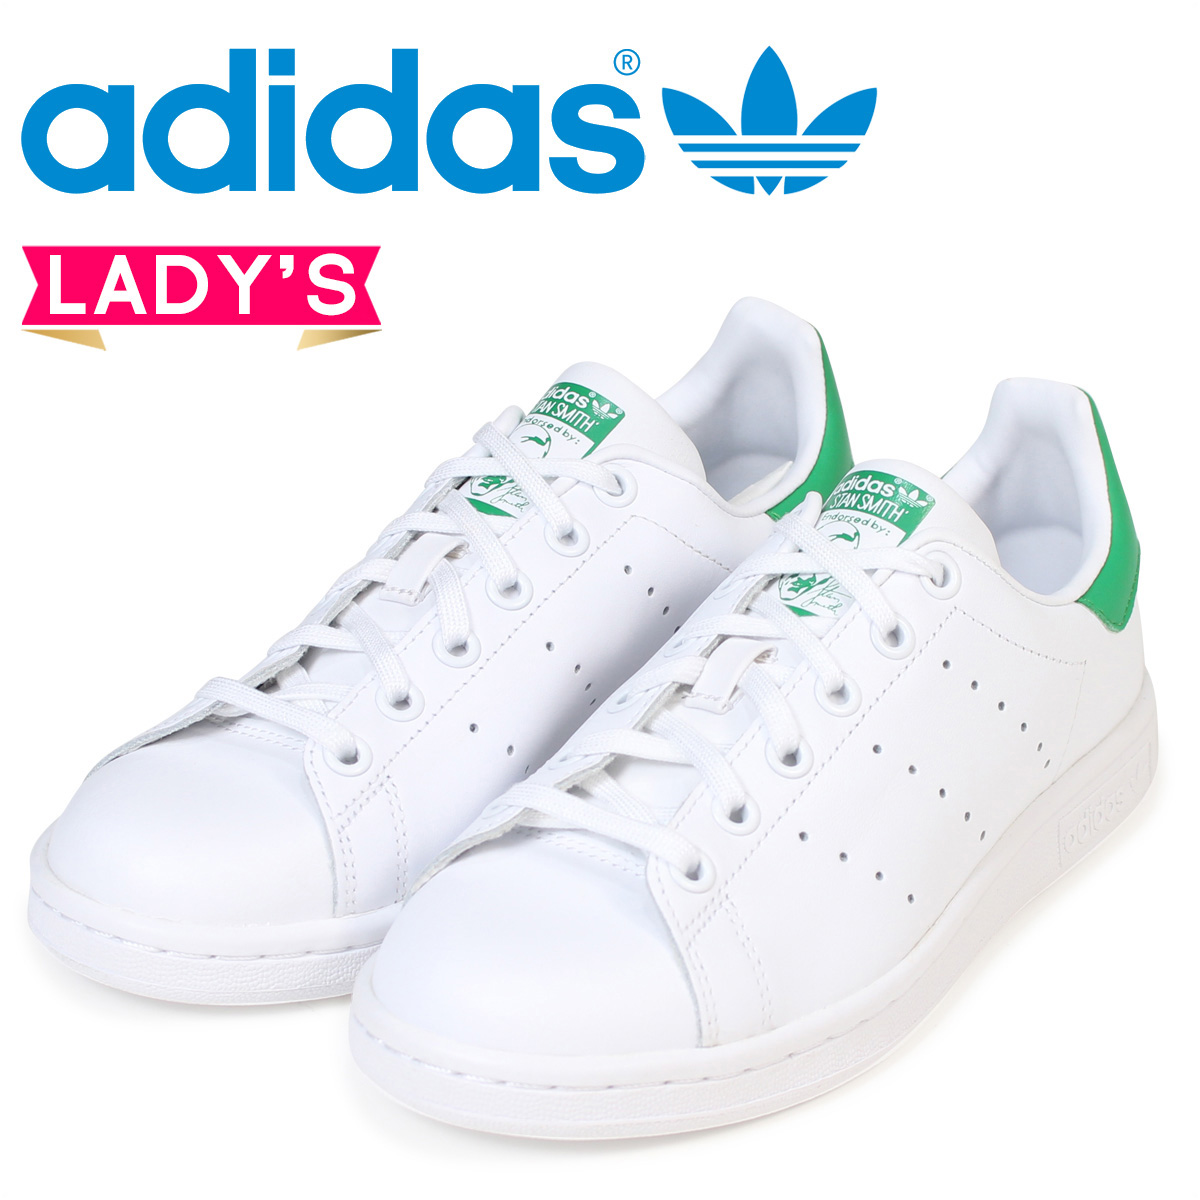 official store later footwear adidas Stan Smith Lady's sneakers Adidas Originals STAN SMITH J M20605  shoes white white originals